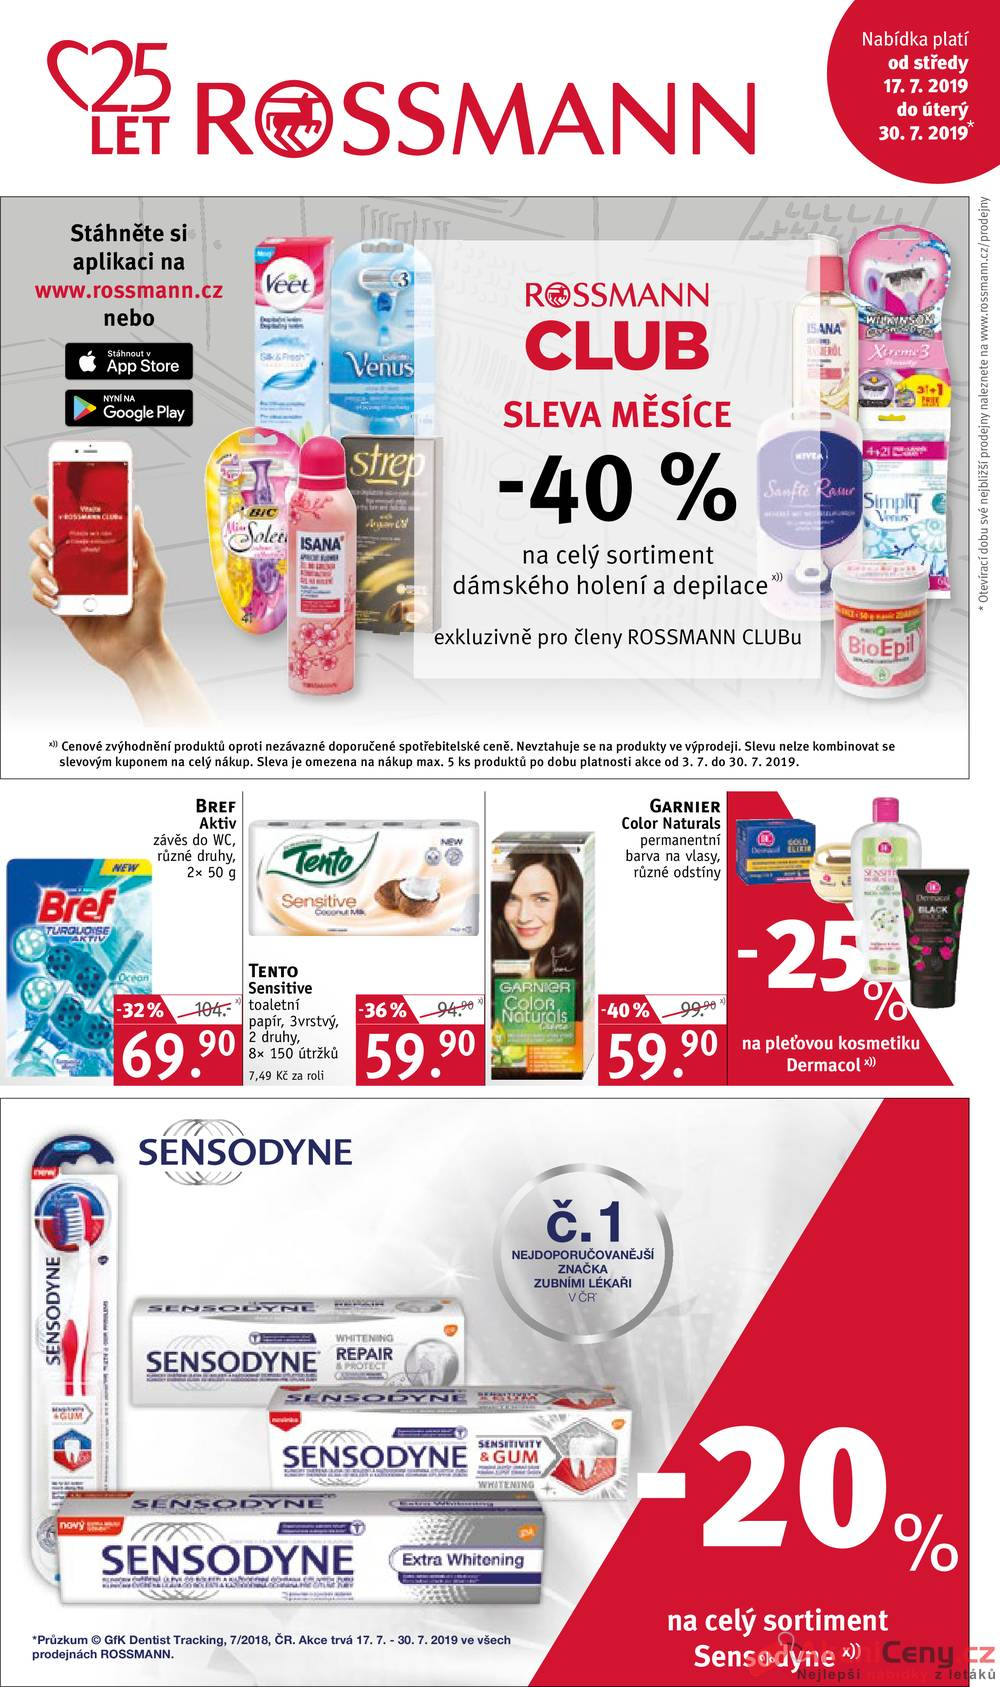 Rossmann od 17.7. do 30.7.2019